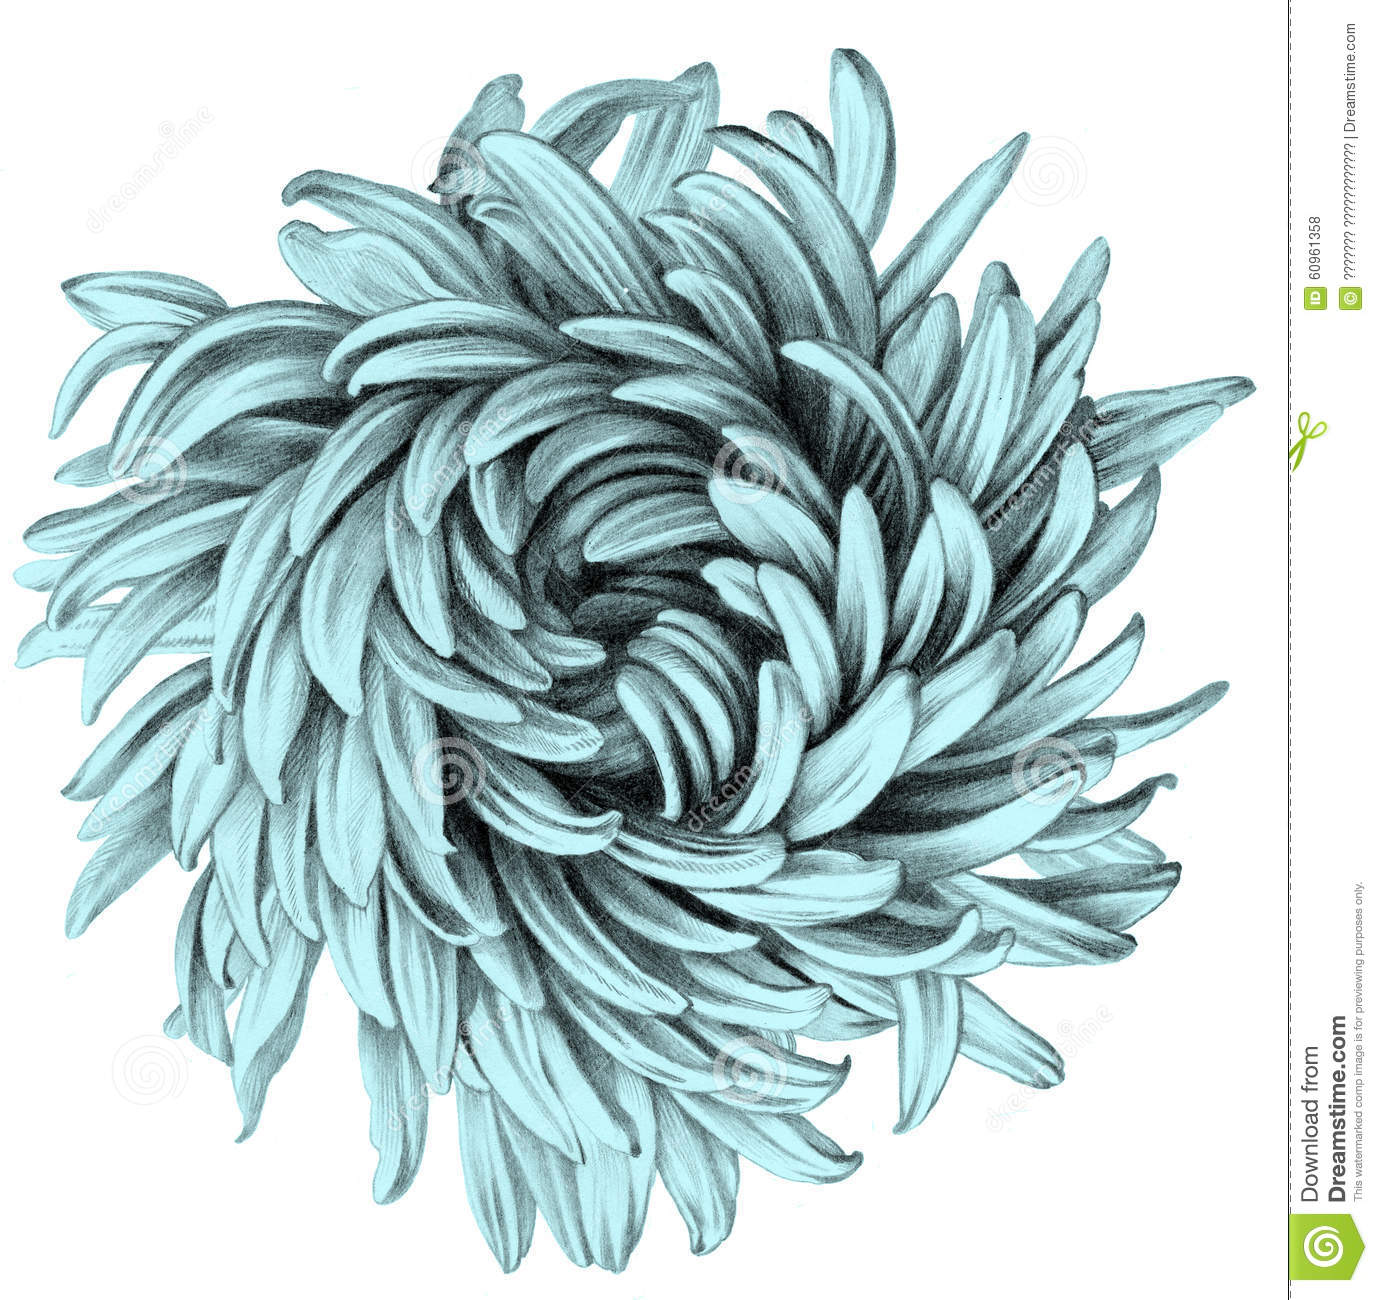 Aster Flower Line Drawing : Aster dessin au crayon illustration stock image